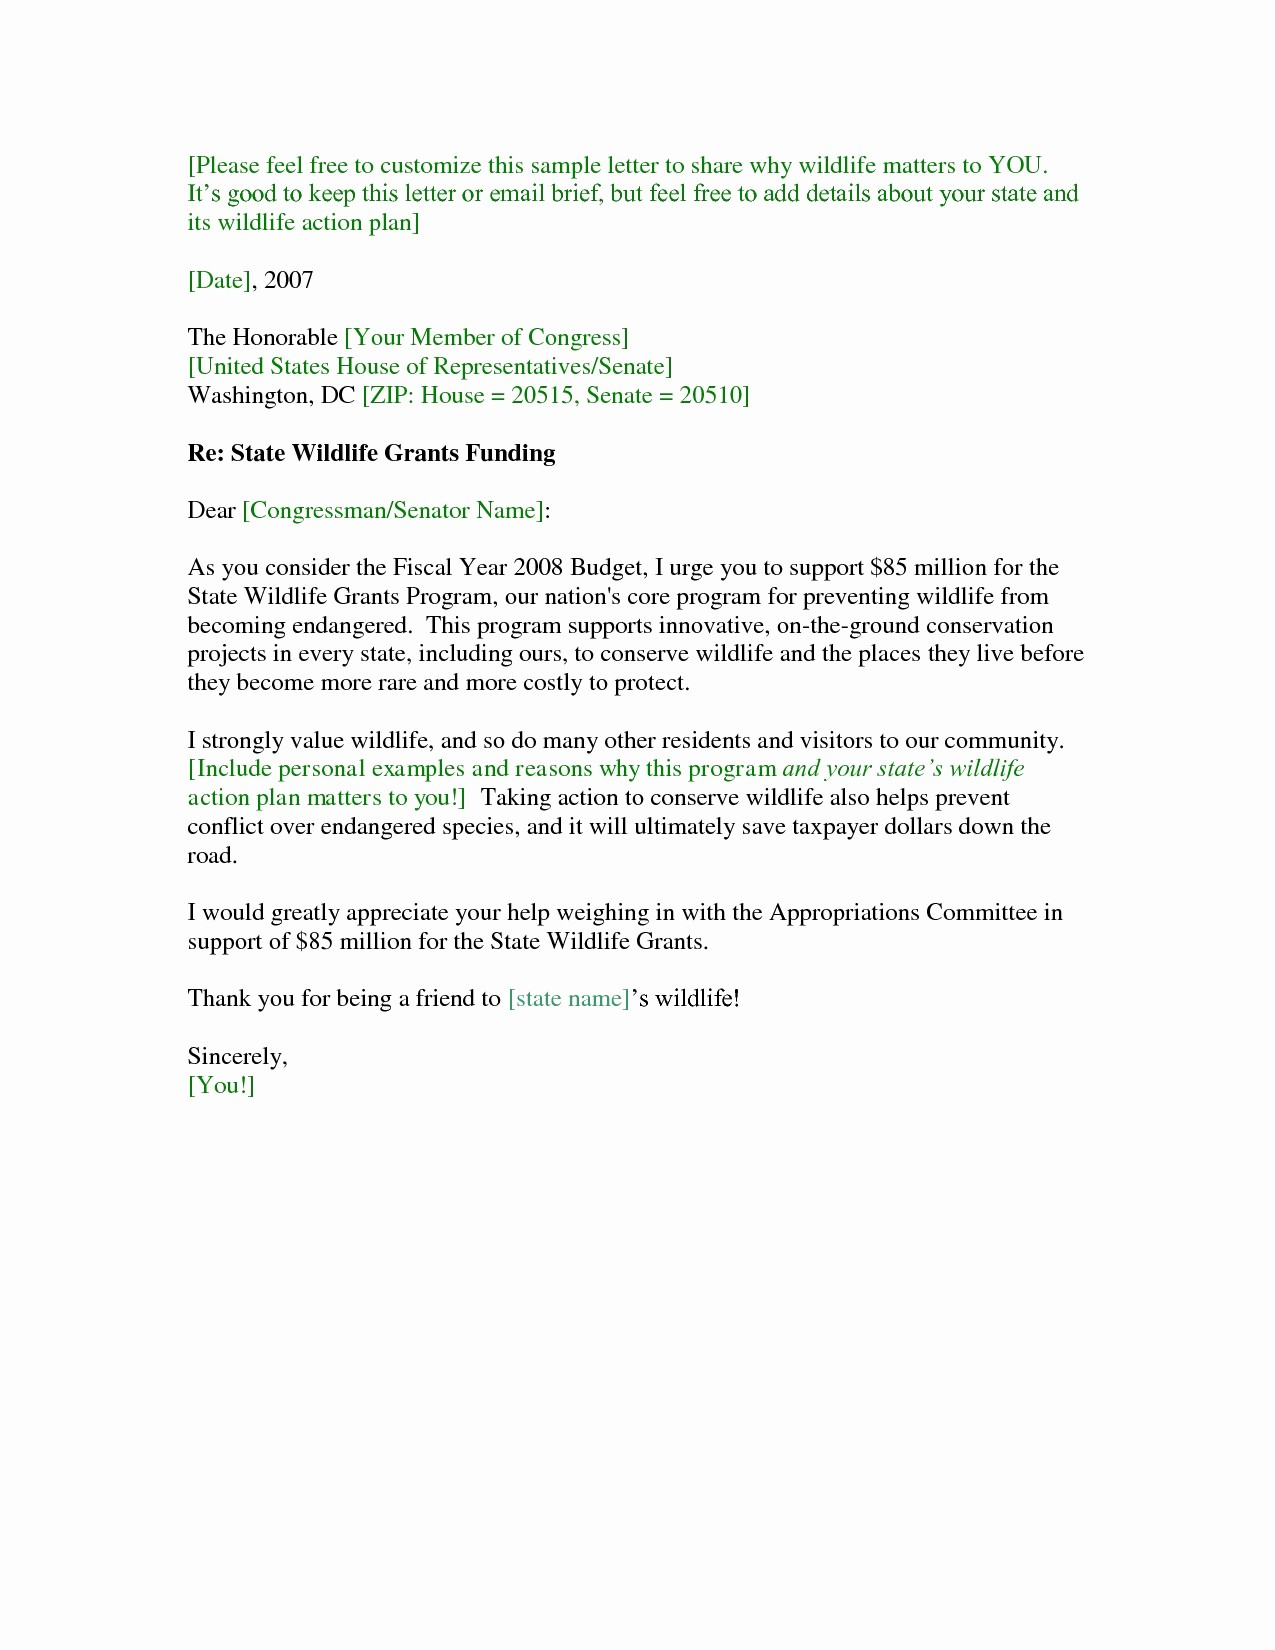 Examples Of Letters Of Reference Beautiful Re Mendation Letter for A Friend Template